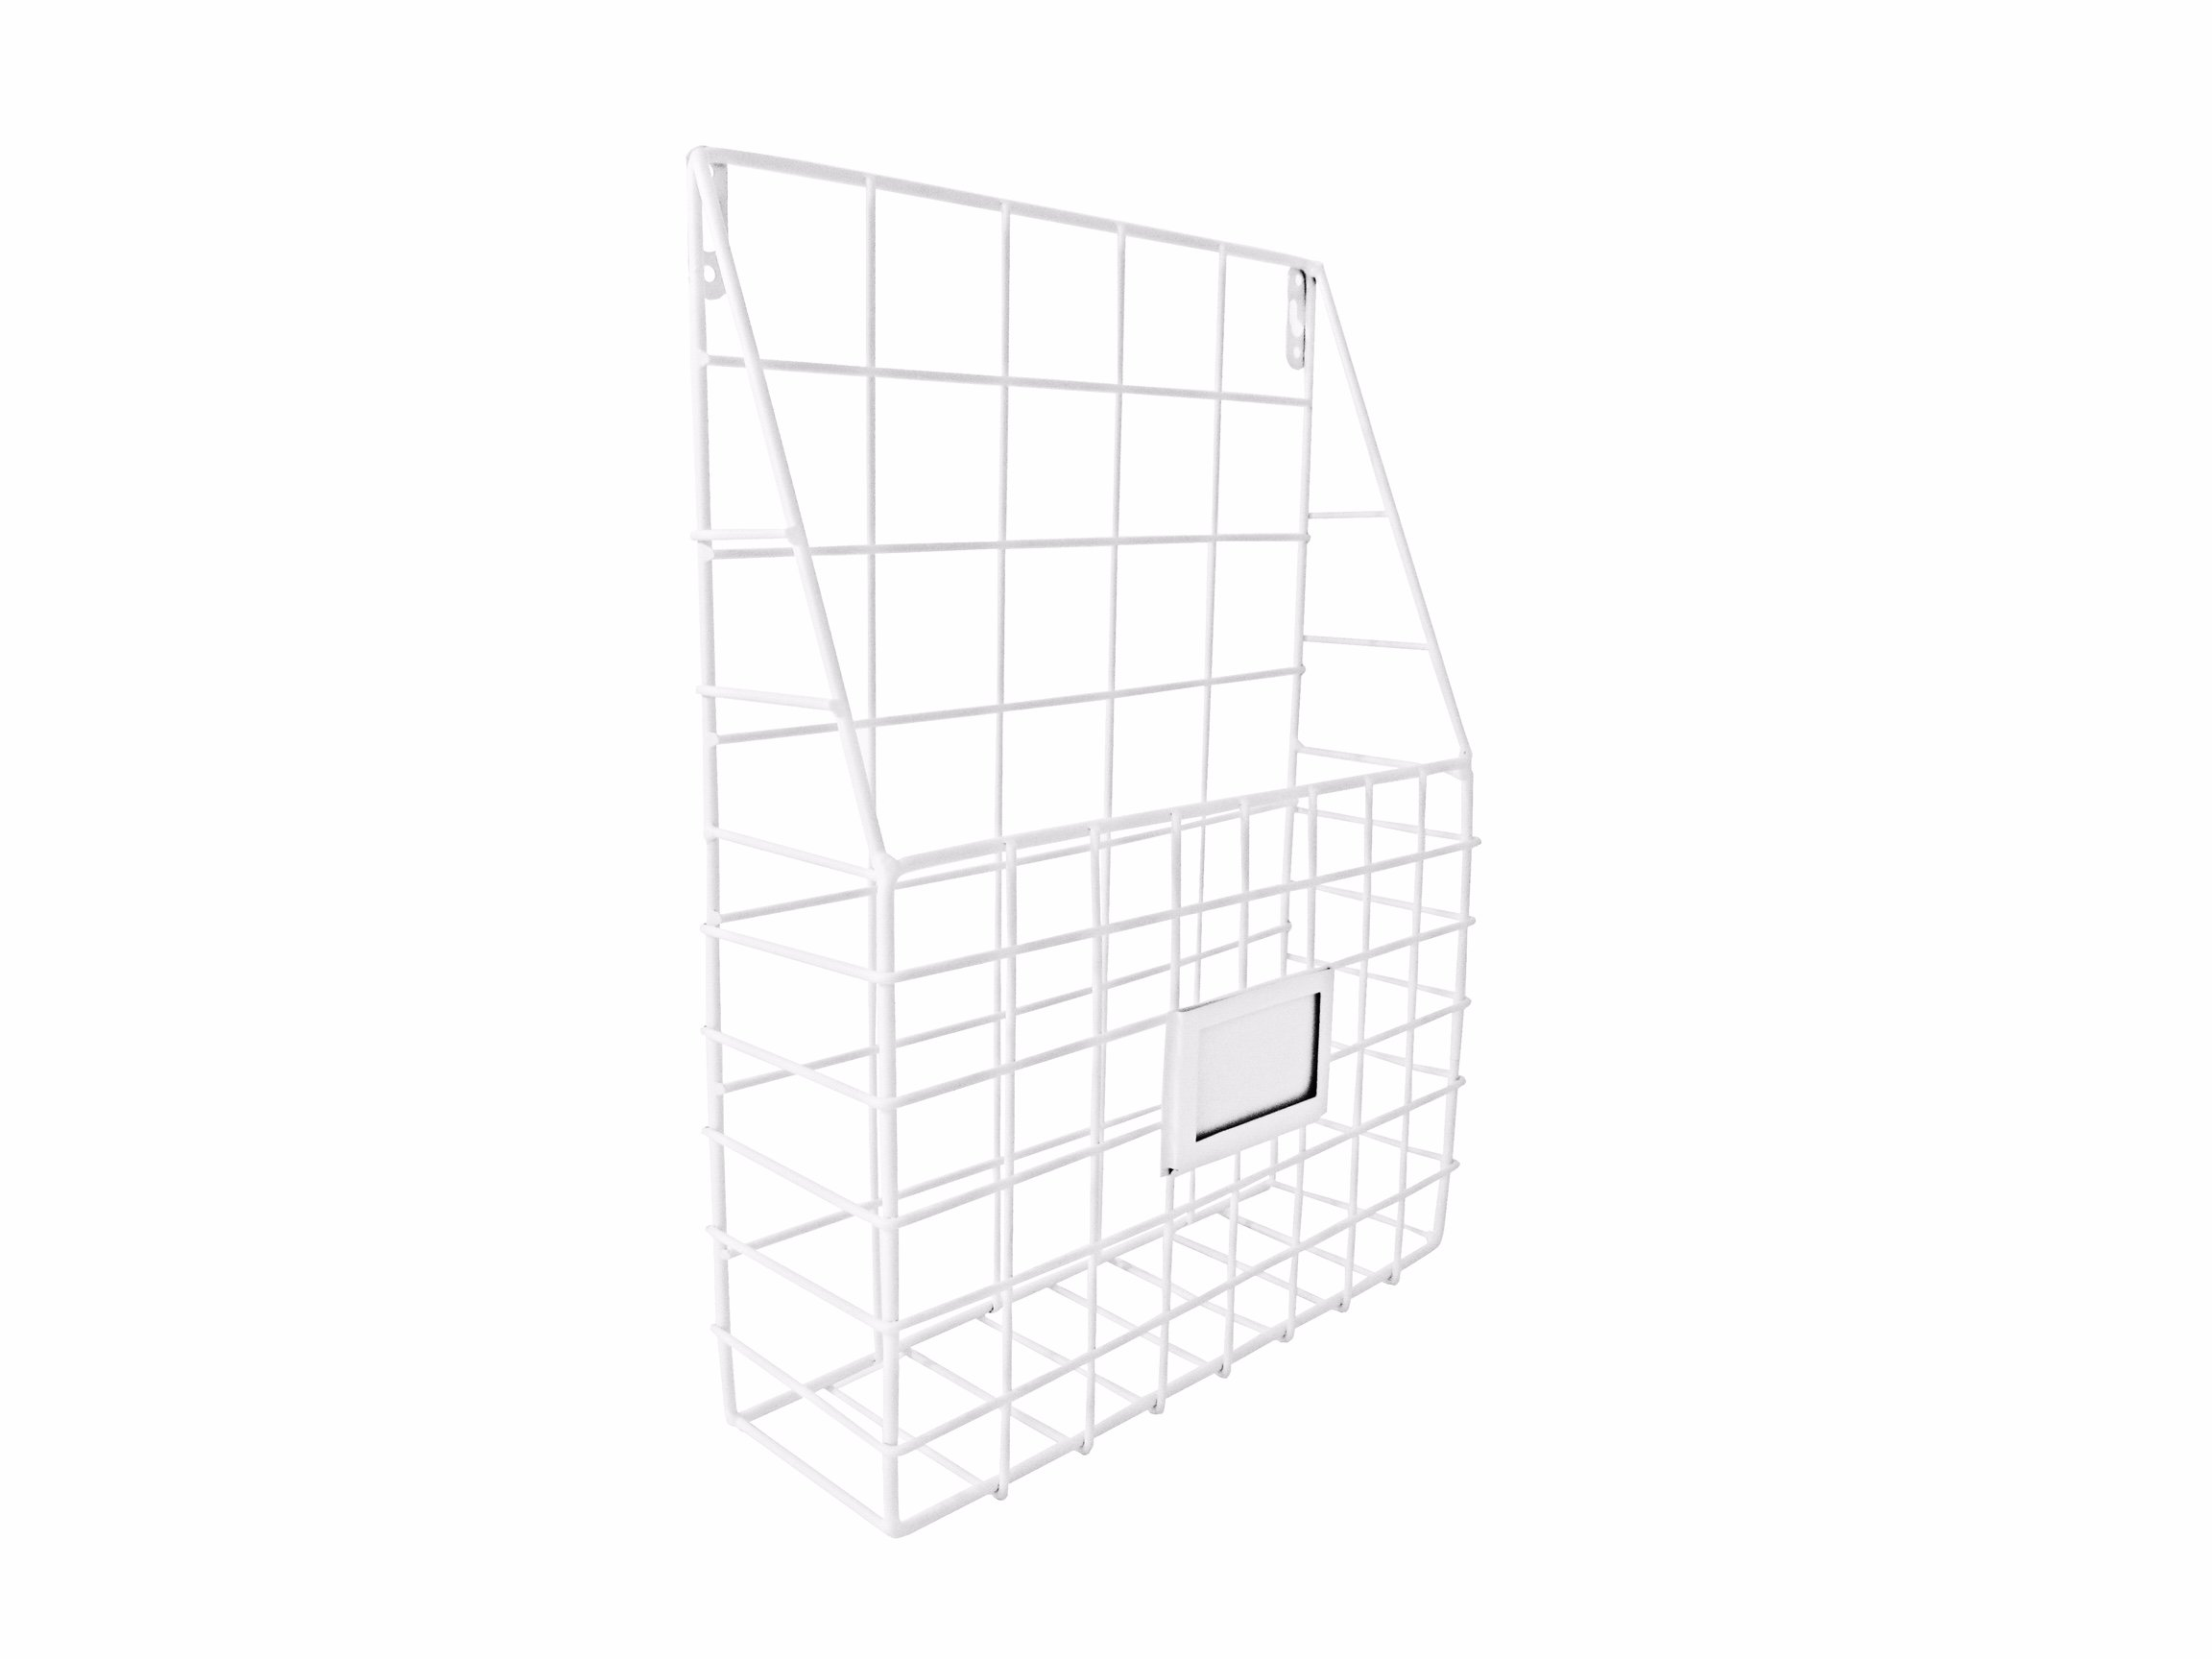 Wall File Organizer Metal White - Simple Chic Adhesive Mounted Wall Organizer, Storage Basket for Magazine, Mail Holder, Office Supplies and Decorations - by Lastly